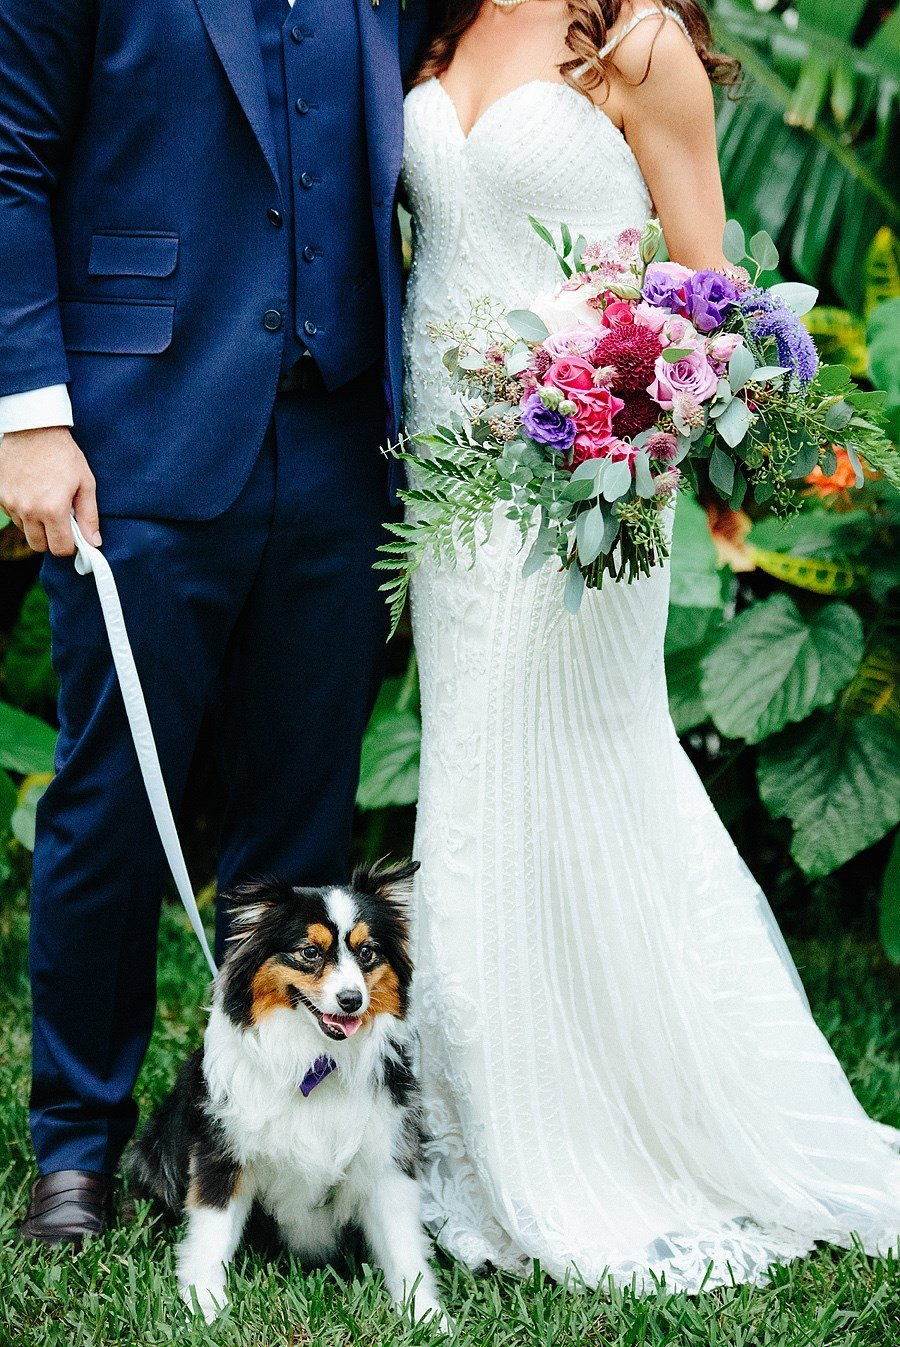 sundy house wedding couple with puppy